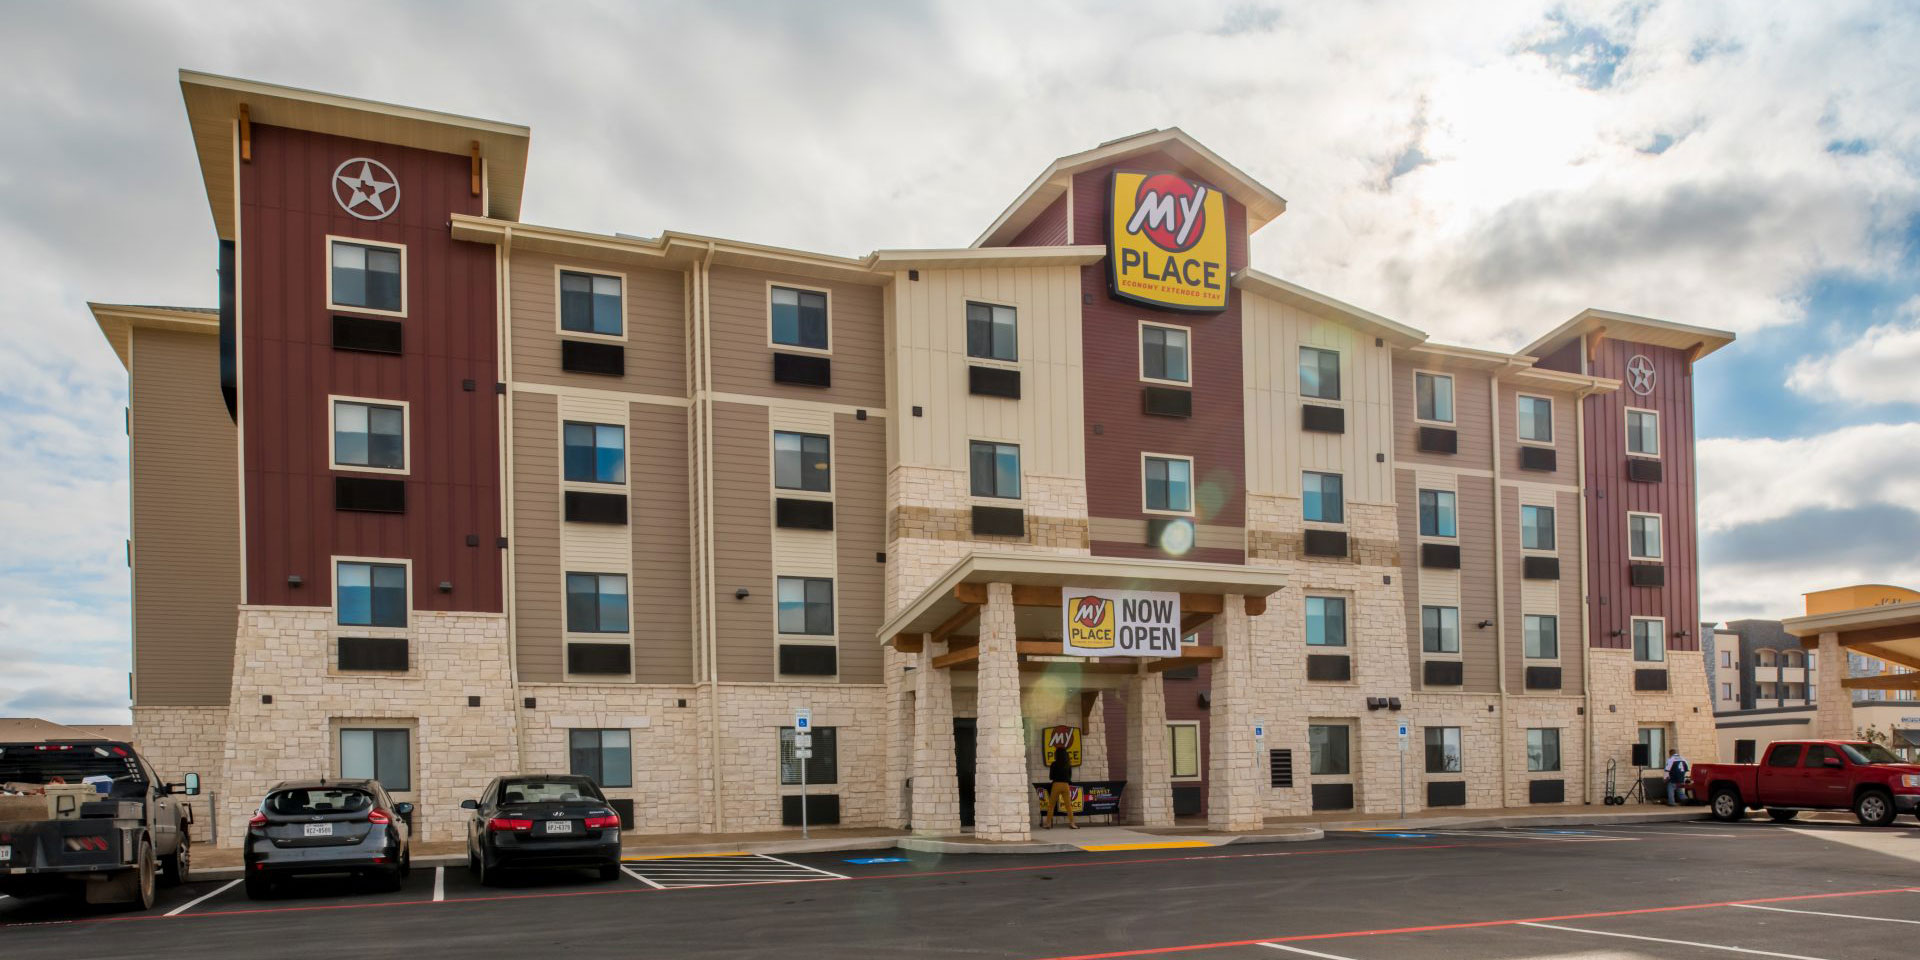 My Place Hotels bucks the trend of extended stay and economy hotels